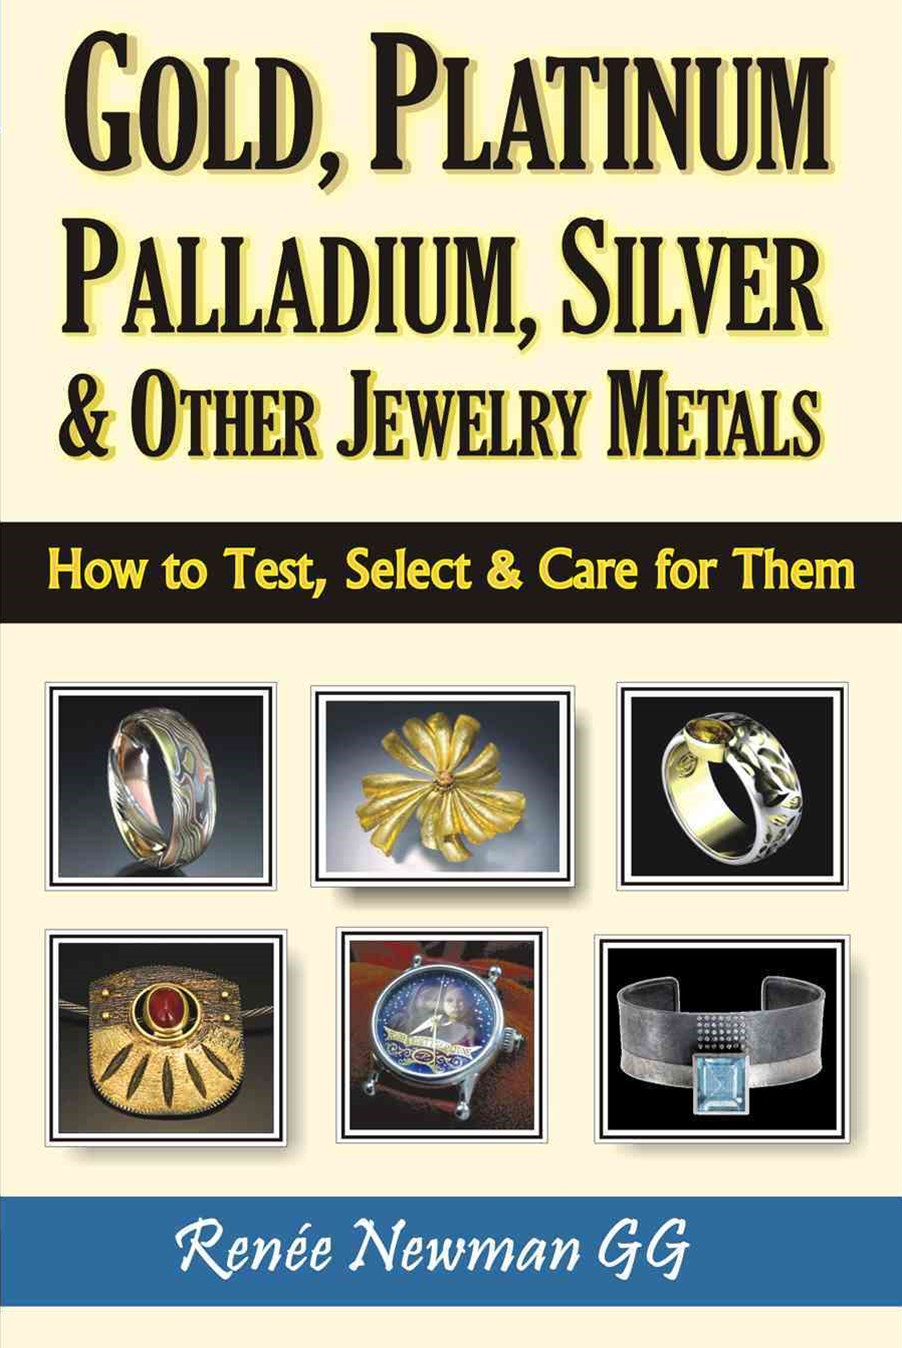 Gold, Platinum, Palladium, Silver and Other Jewelry Metals